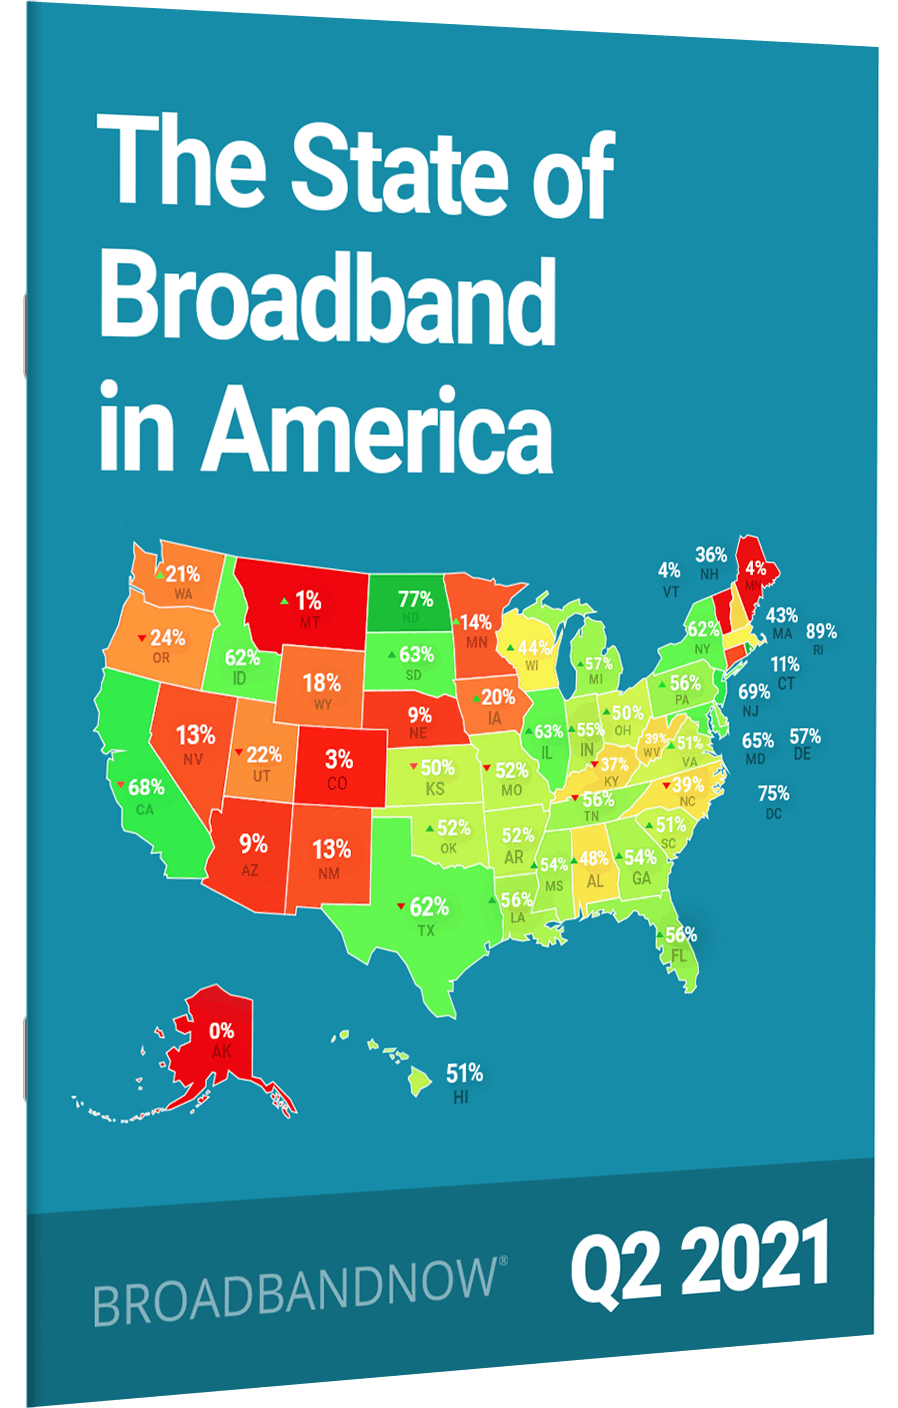 The State of Broadband in America, Q2 2021